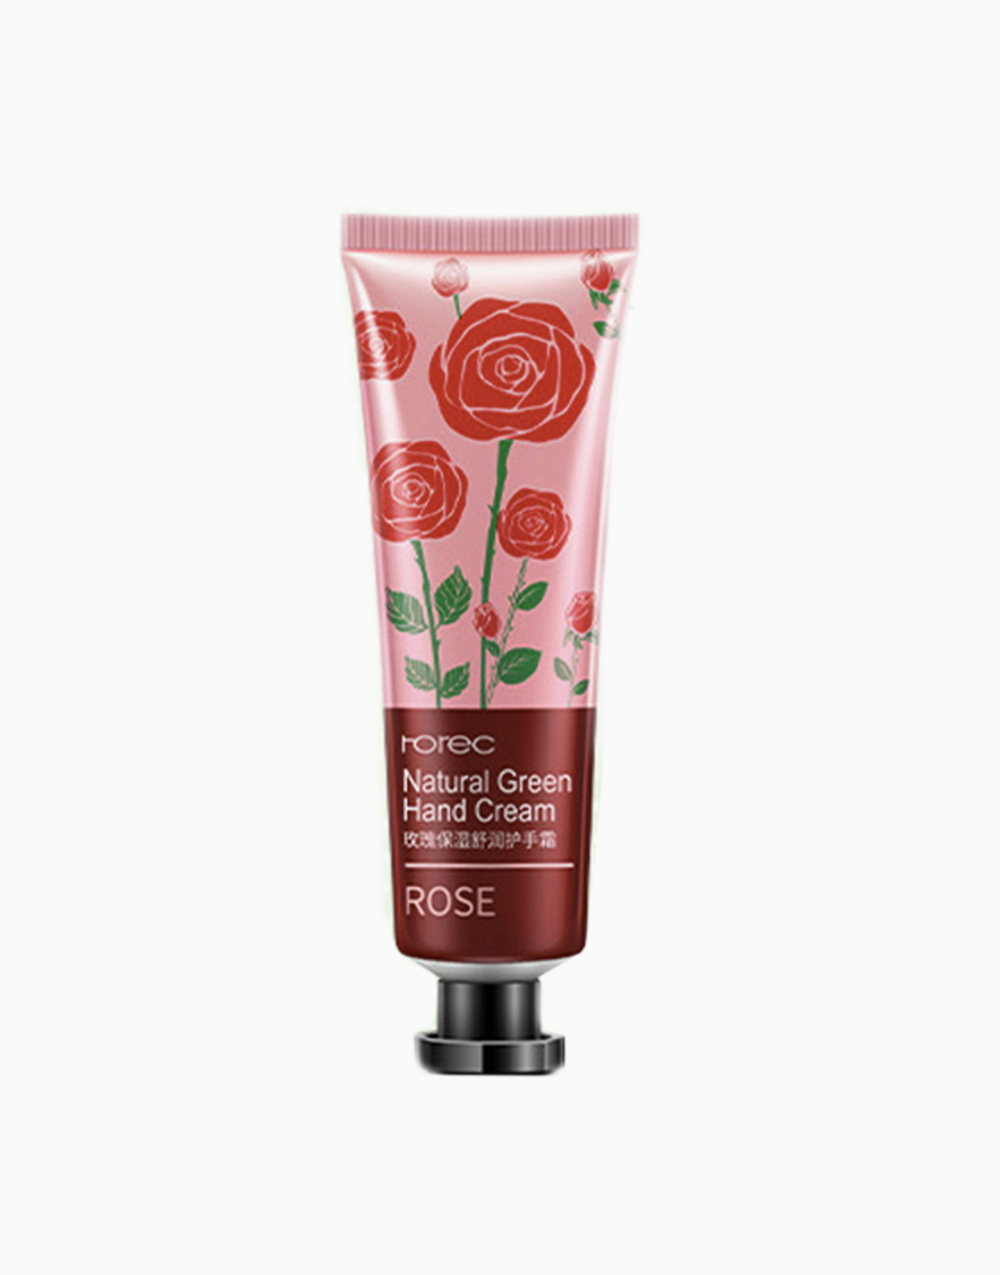 Rose Natural Green Hand Cream by Rorec